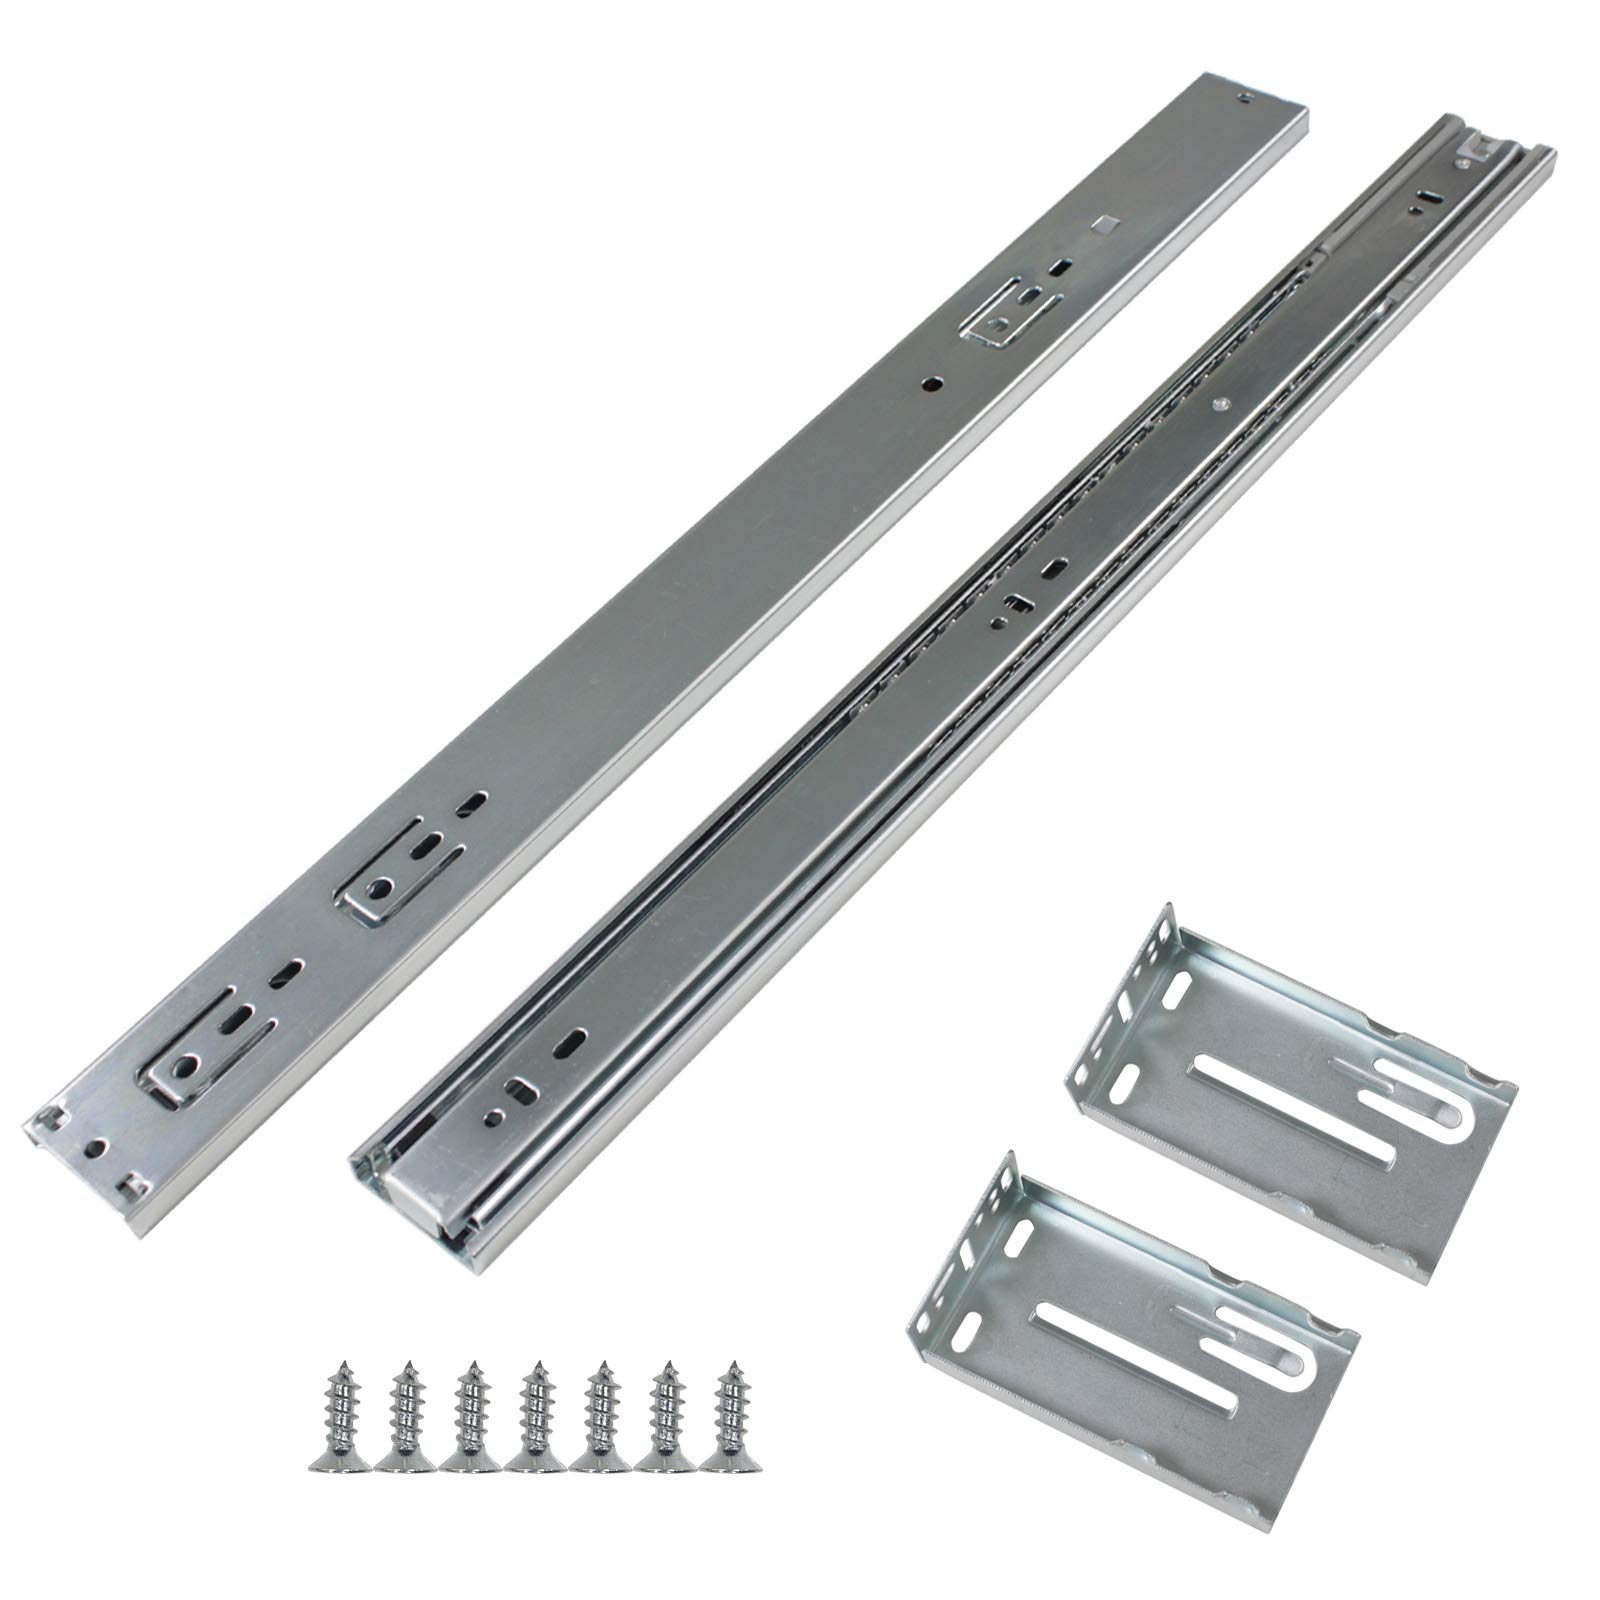 Gobrico Rear/Under Mounting Drawer Slides With Brackets Soft Closing Ball Bearing 100 Lb Glides Runners Full Extension 22in 5Pairs by Gobrico (Image #1)